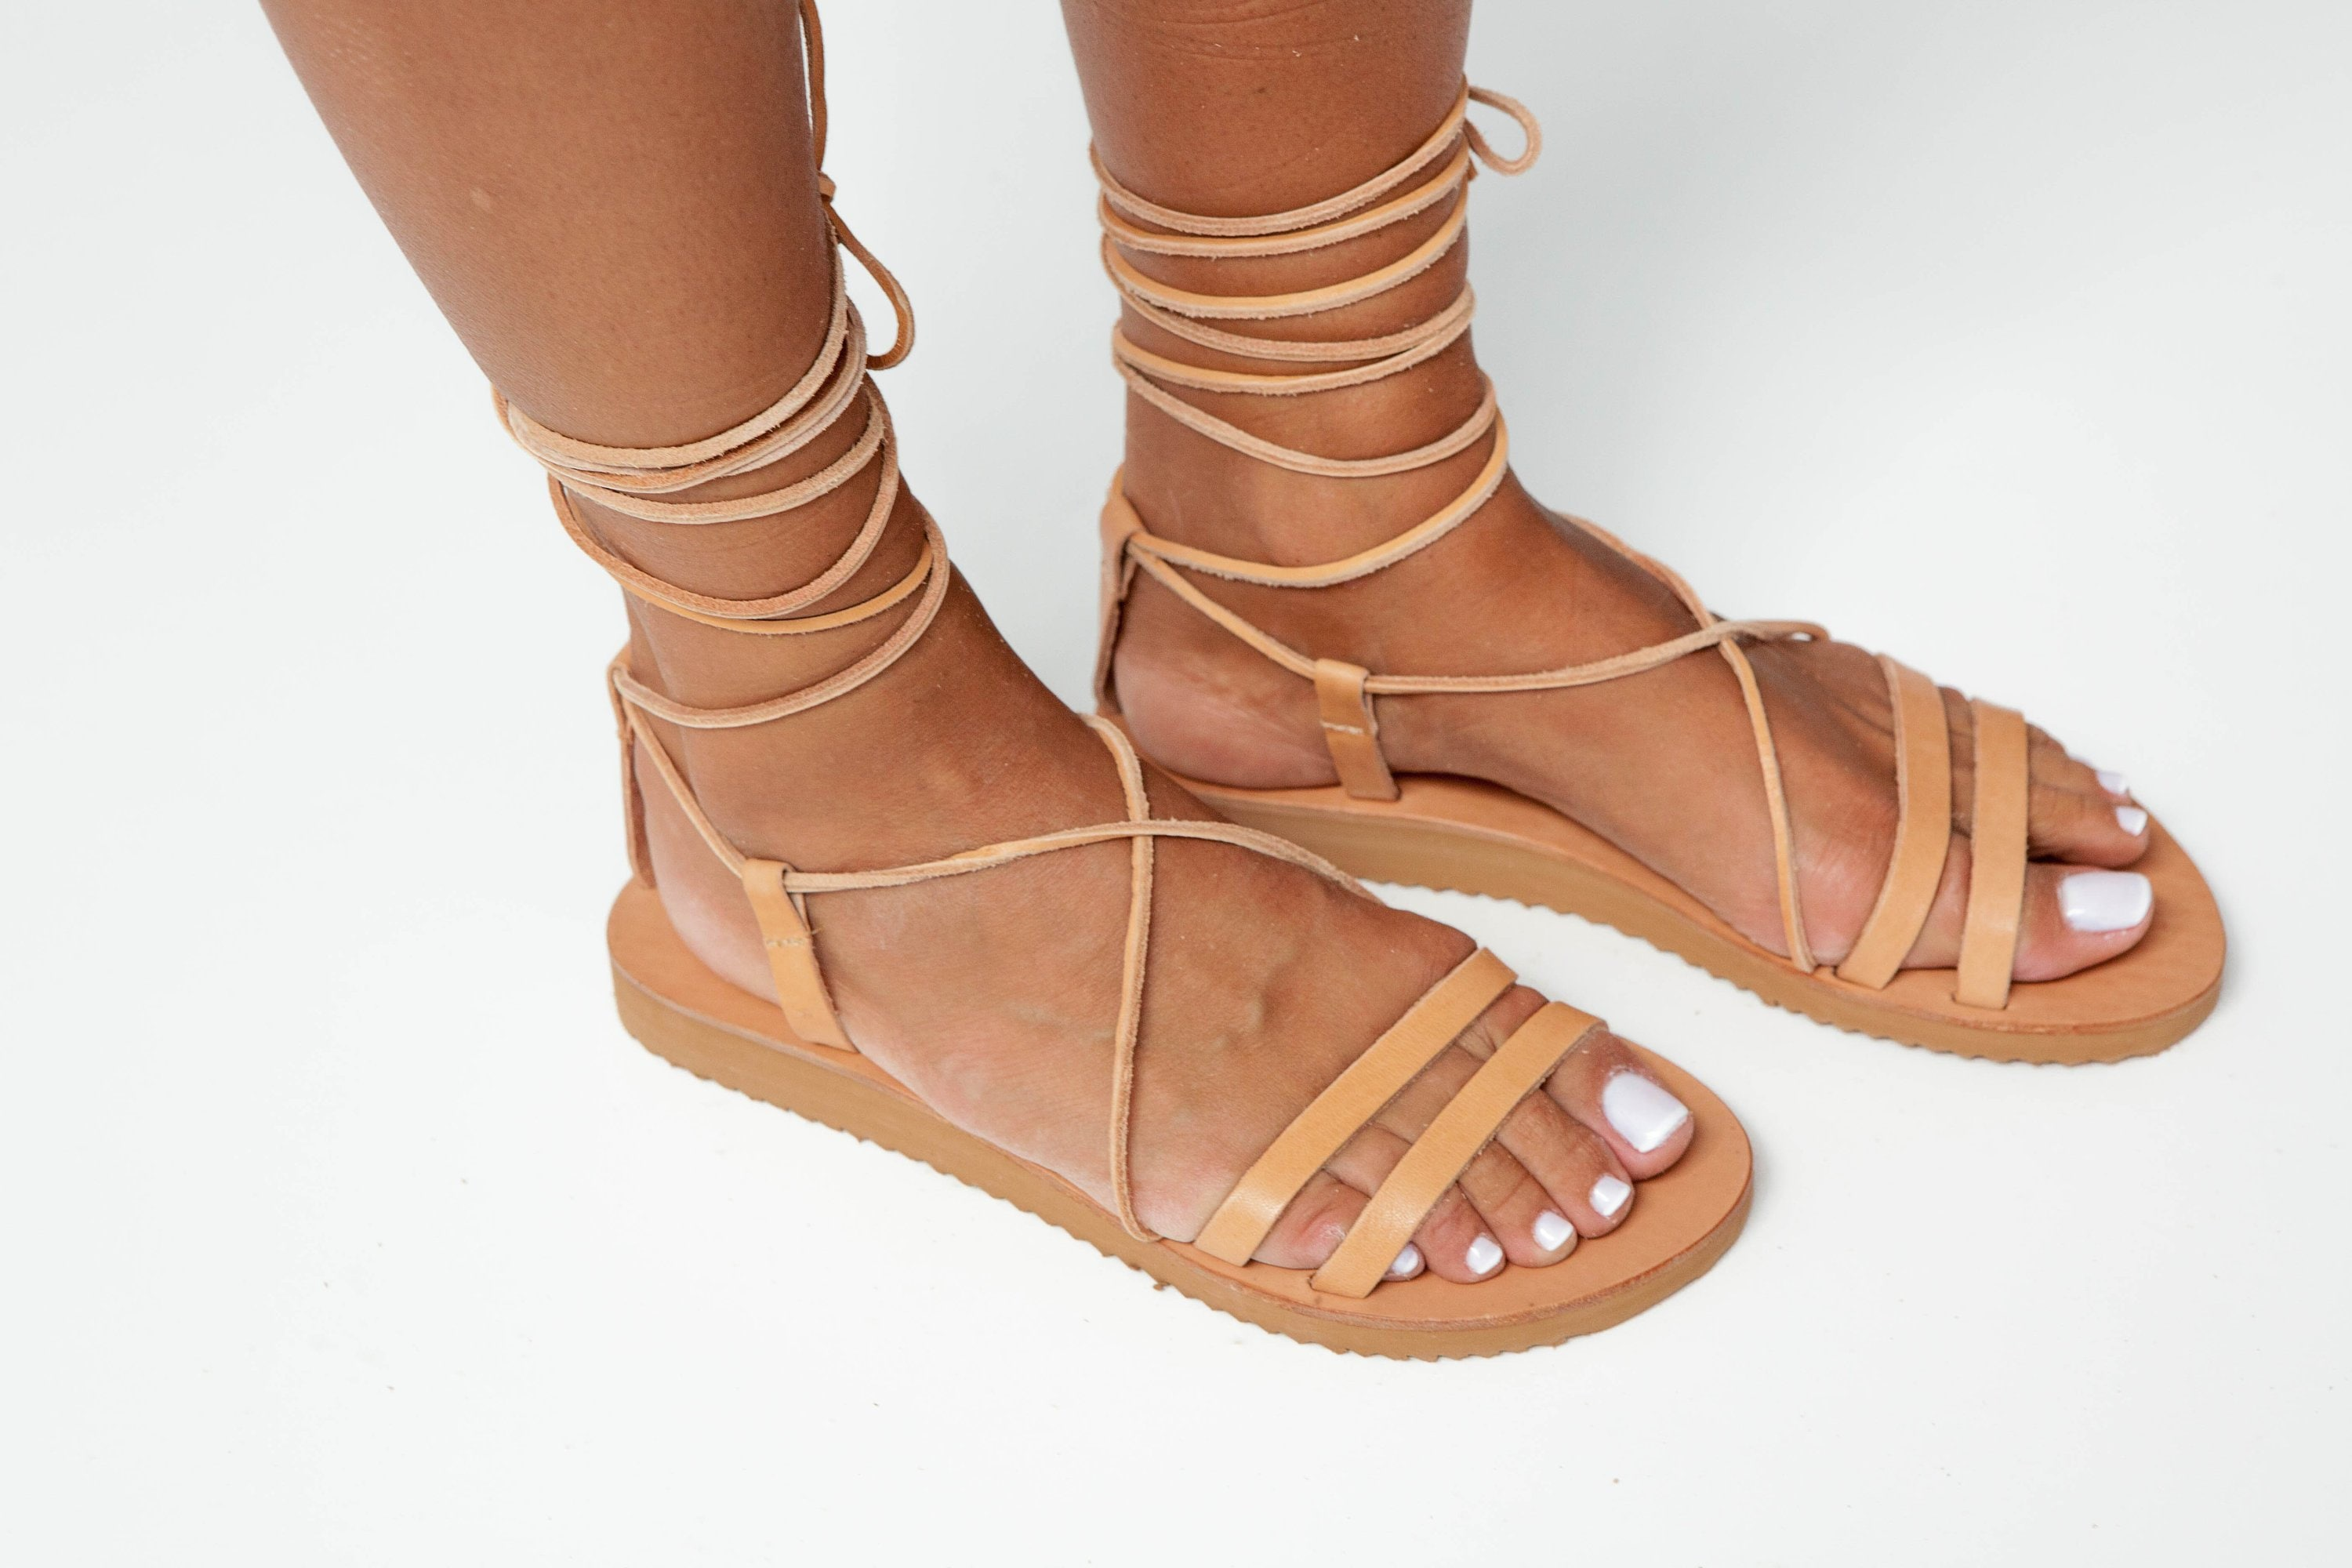 Leather Gladiator Sandals, Ancient Greek Strappy Sandals, Lace up Handmade Gladiators, Women Sandals PAXOS